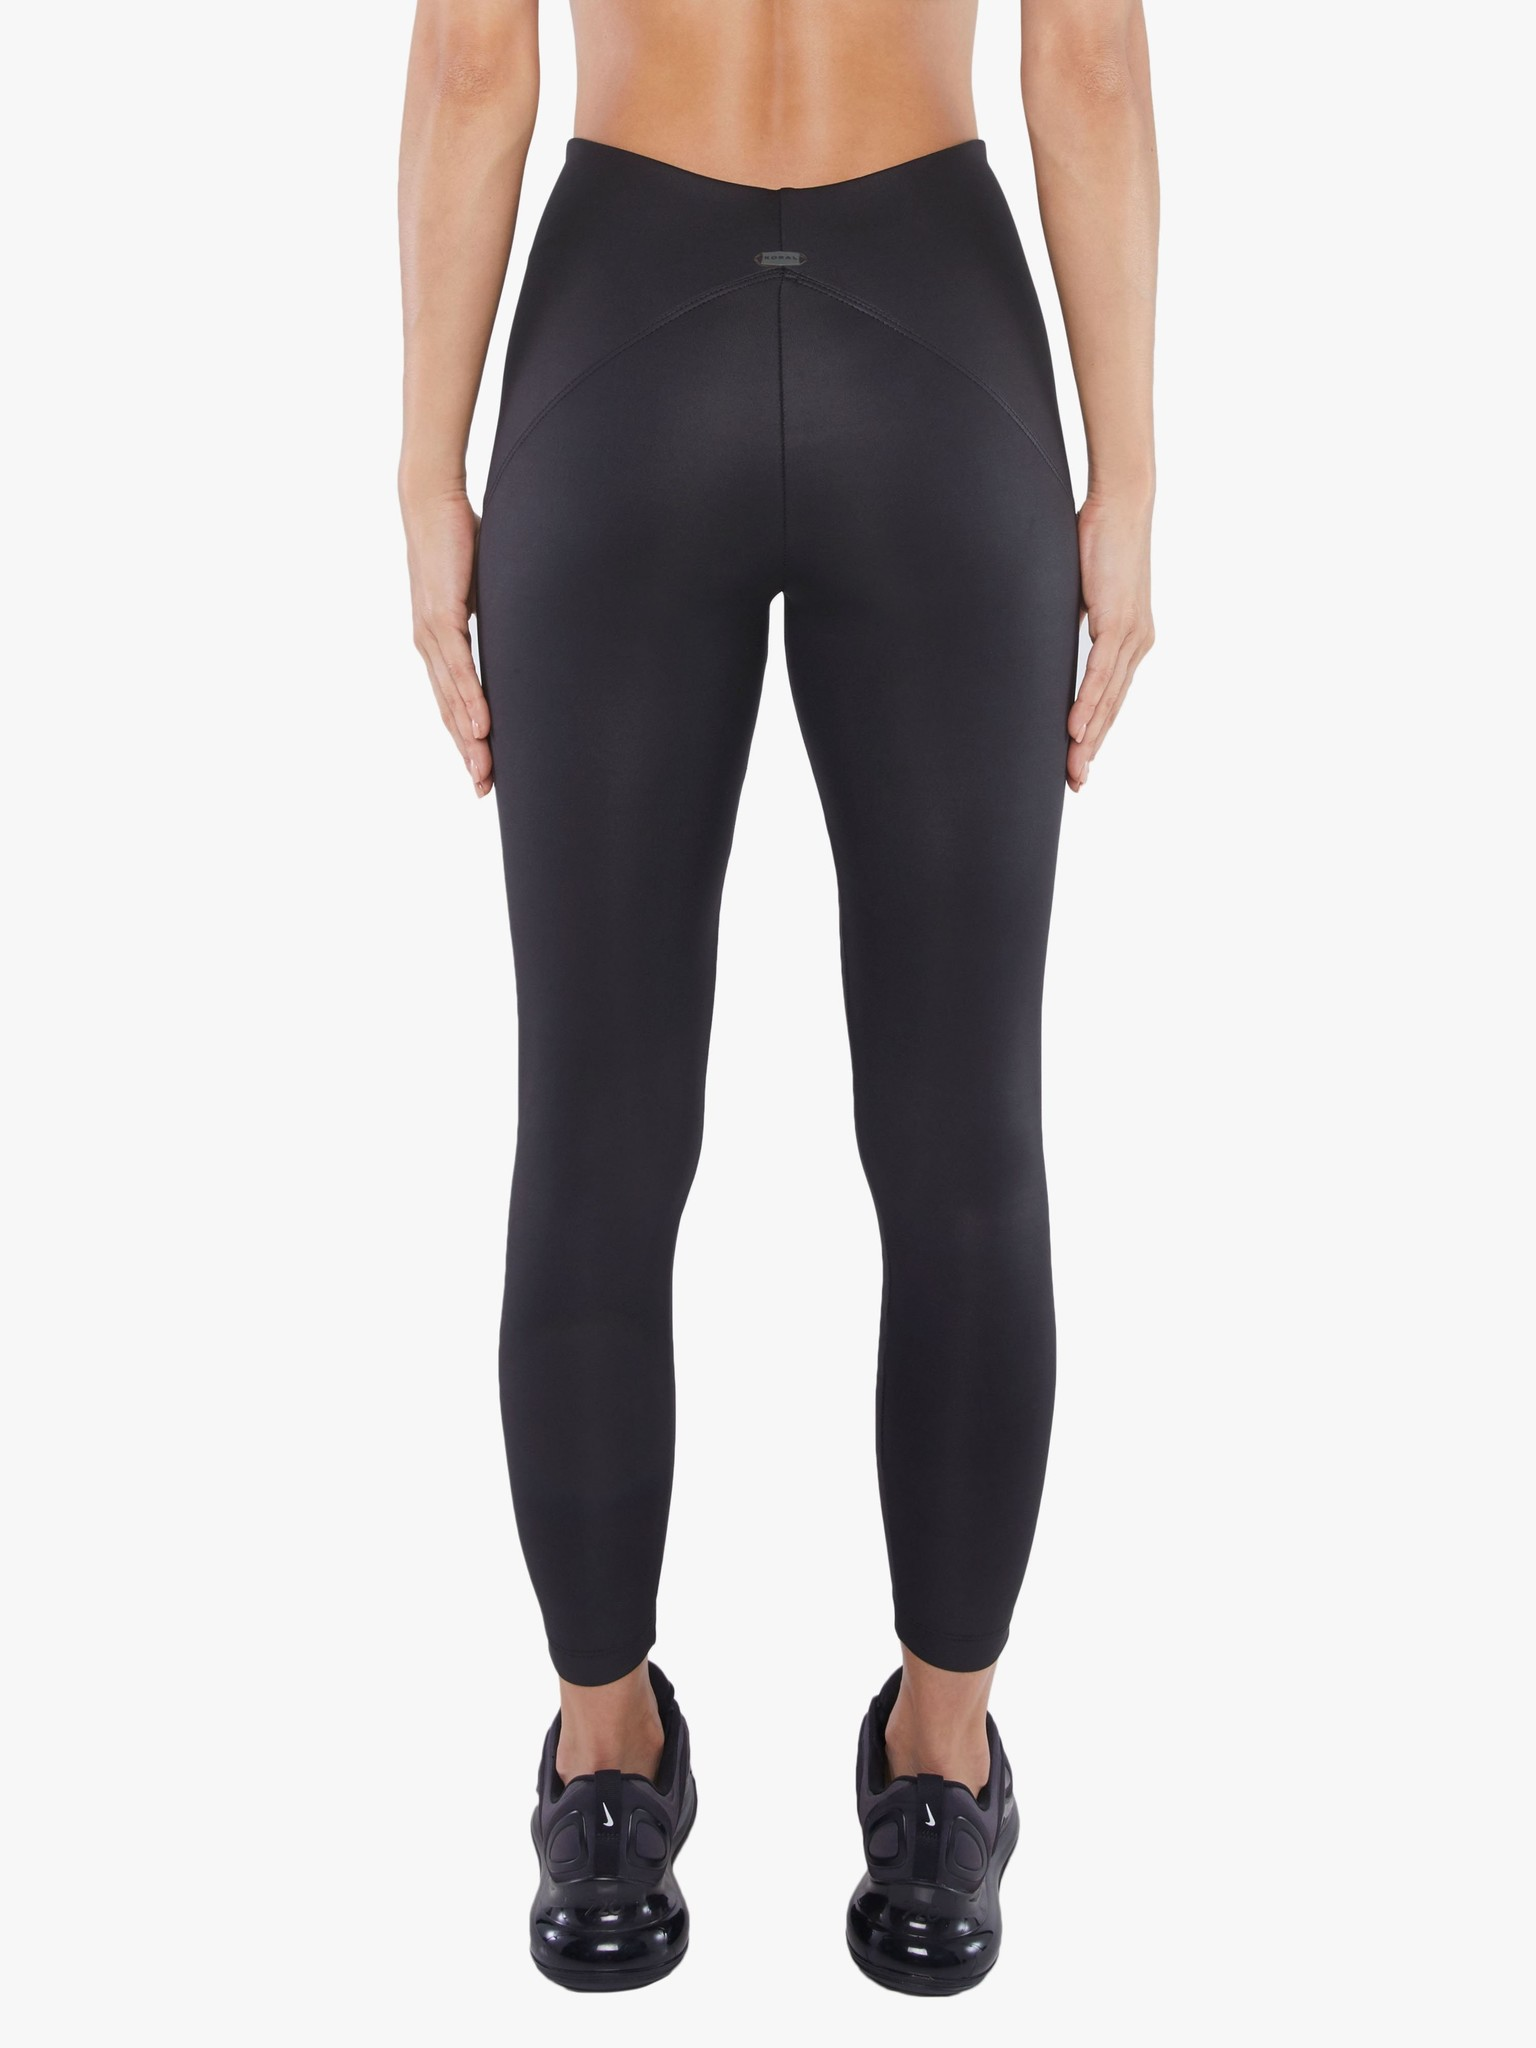 Koral Activewear Serve High Waist Scuba Legging